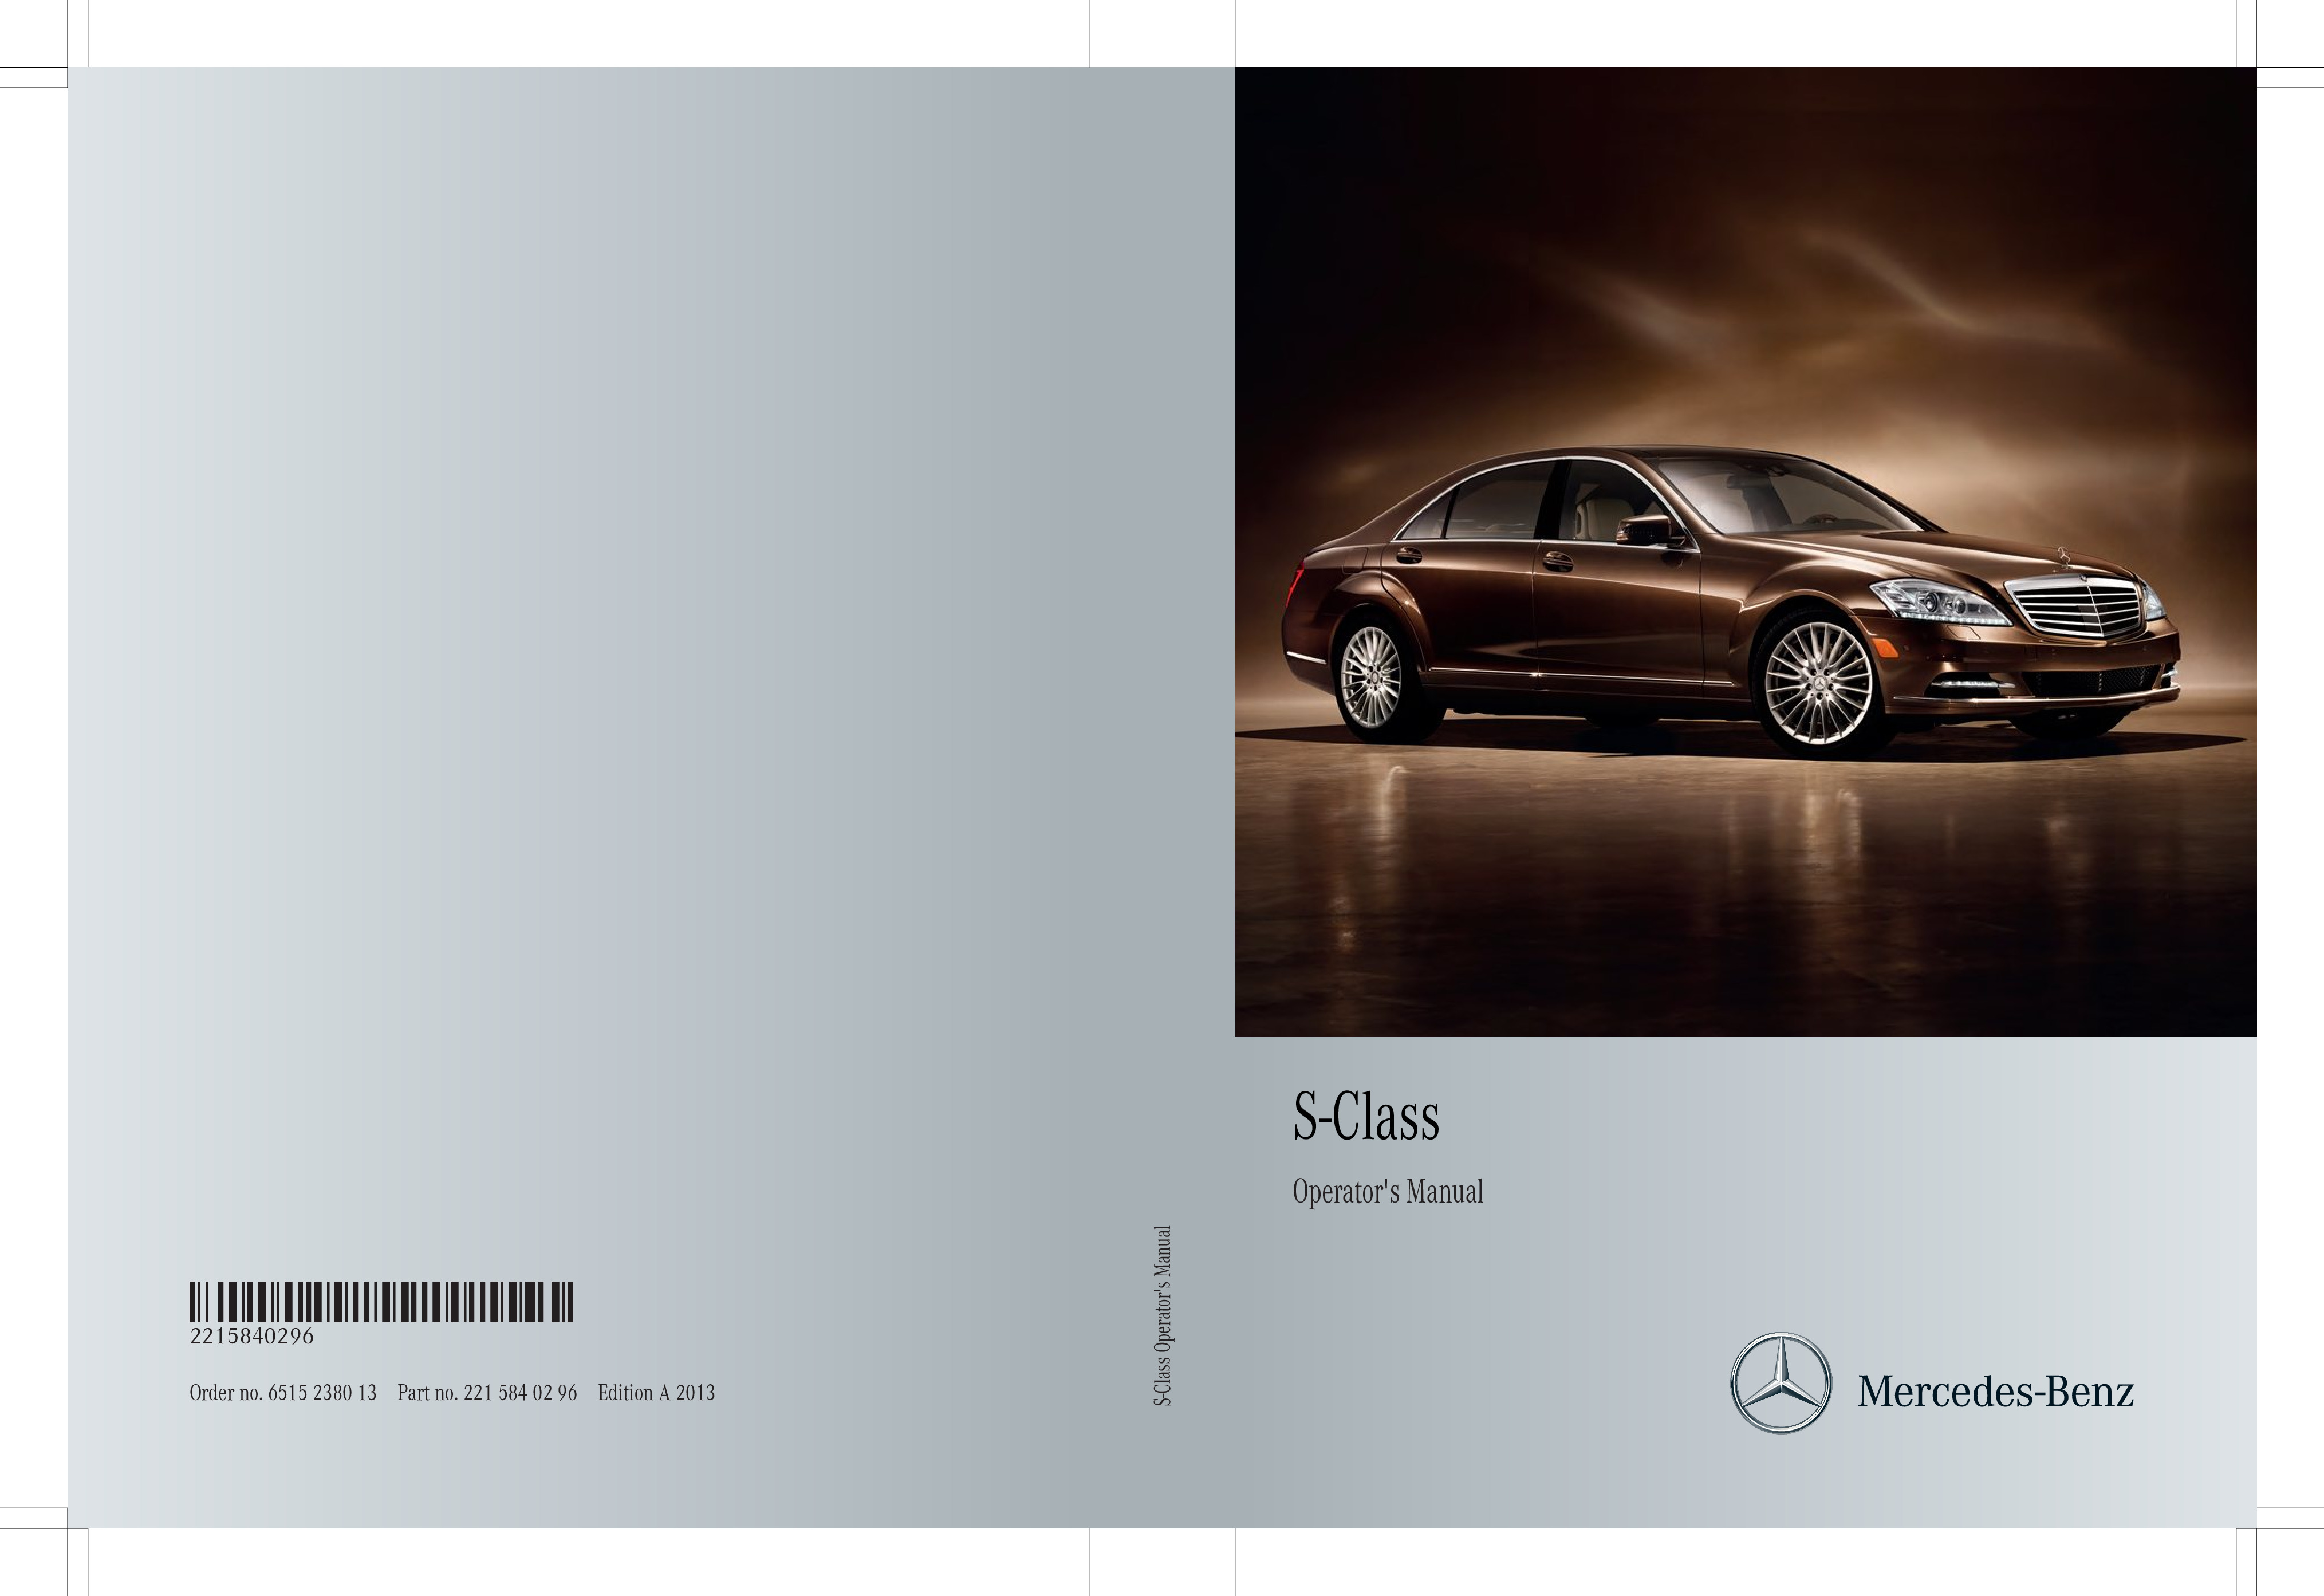 2013 Mercedes-Benz S Class owners manual